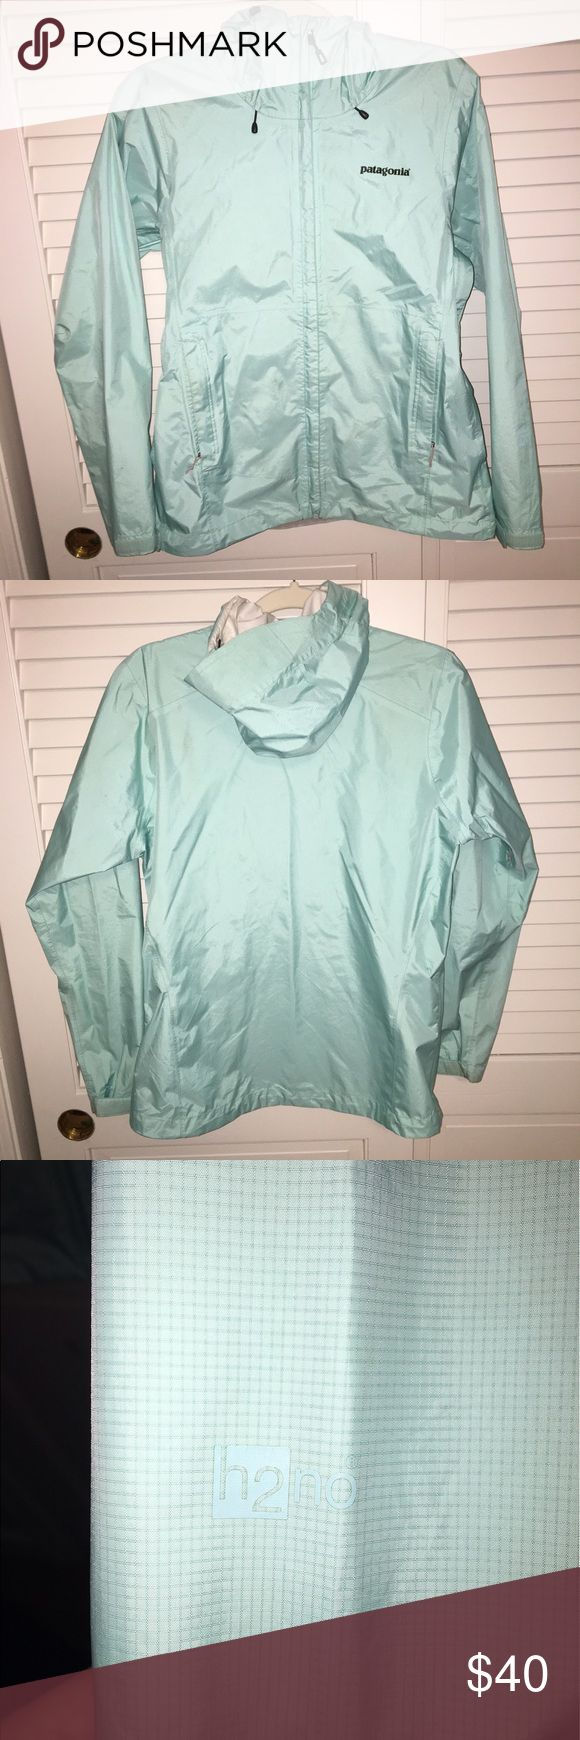 Patagonia Torrentshell Jacket Women's Torrentshell Patagonia rain jacket in a beautiful Tiffany blue color! Optional ventilation under arms, large pockets, adjustable sleeve cuffs, and an adjustable hood are just some of this jackets best features! Great condition, a few small stains that are essentially unnoticeable and actually take effort to find! Will do lower on ️️! Patagonia Jackets & Coats